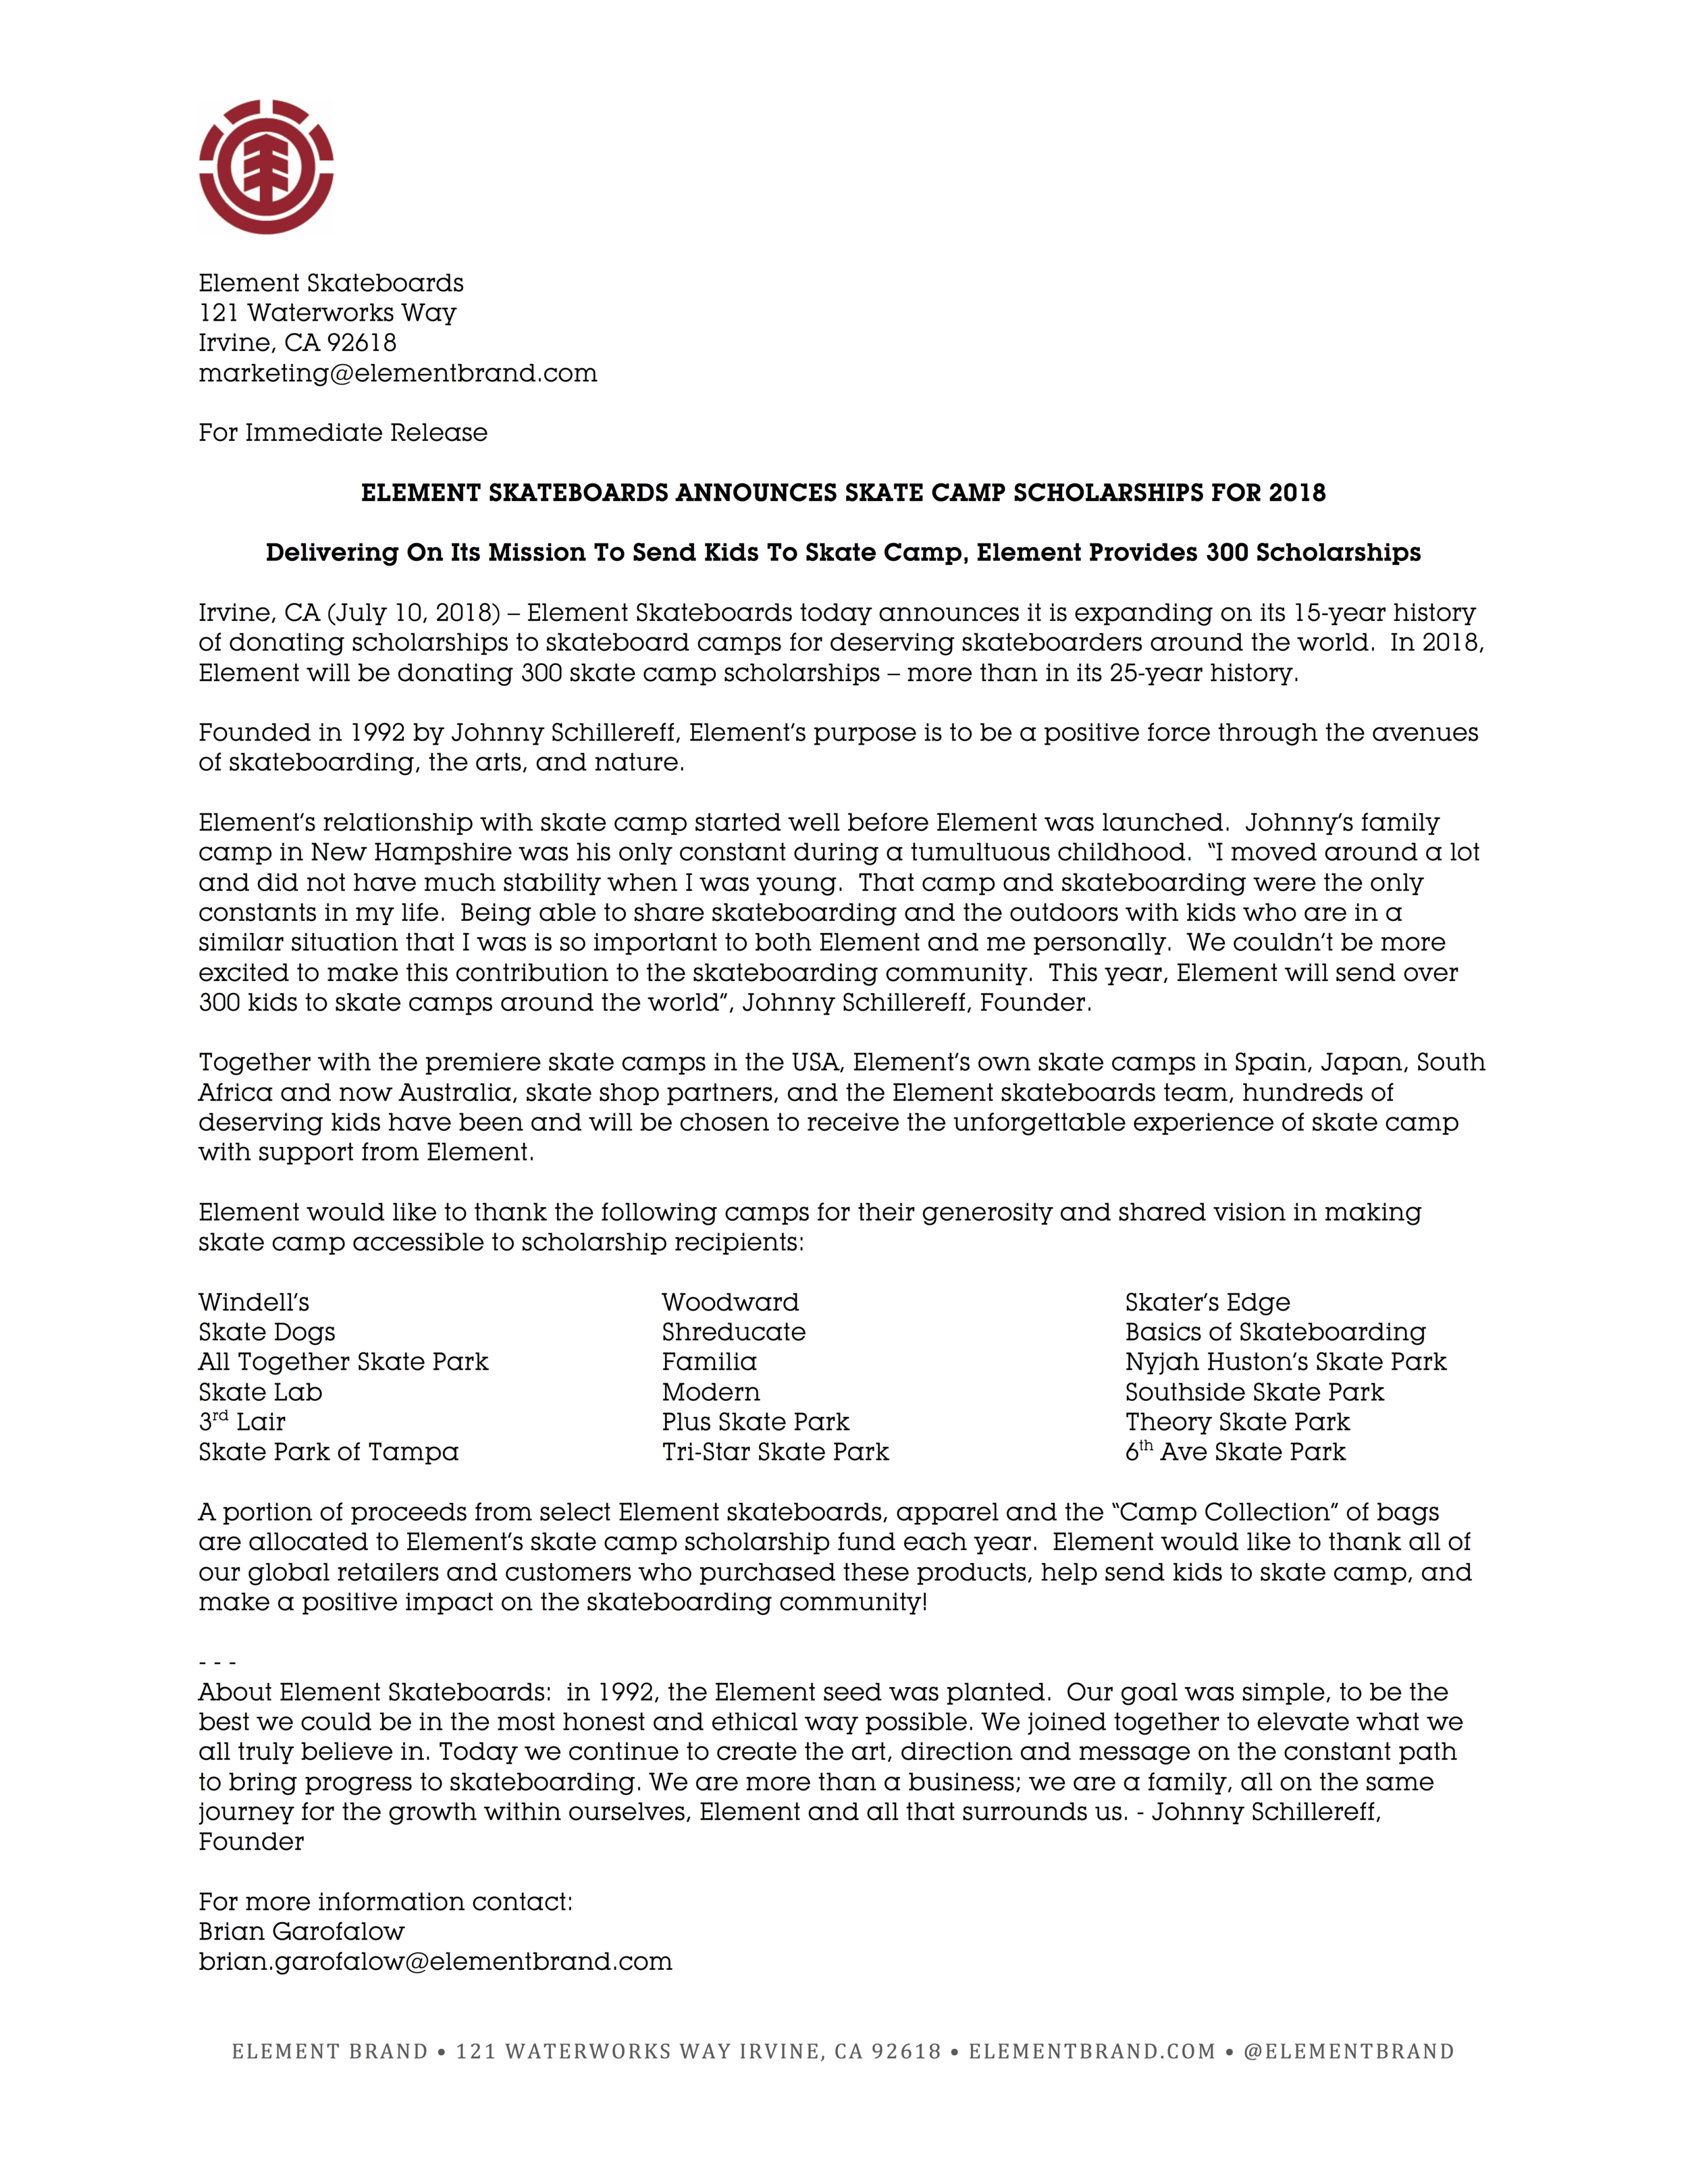 Element Announces 2018 Skate Camp Scholarships Press Release.png